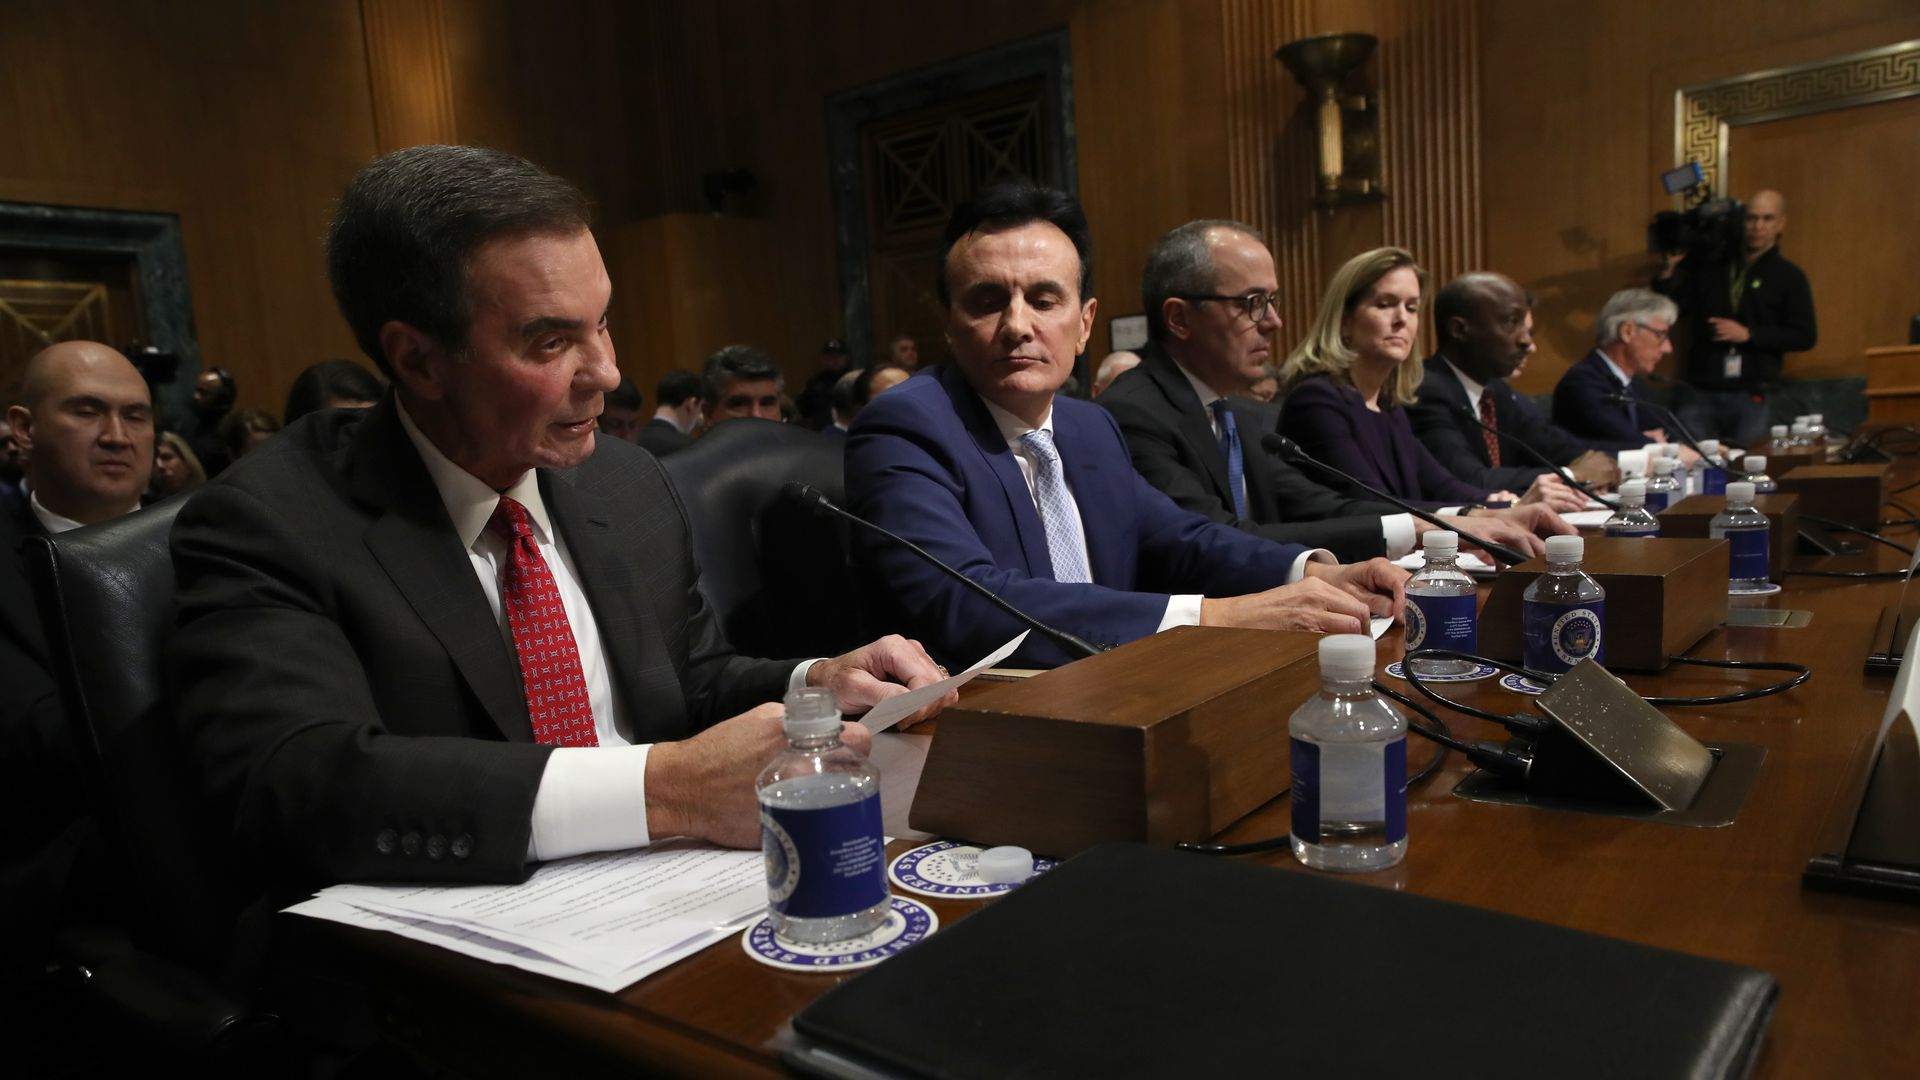 AbbVie CEO Richard Gonzales is in the foreground as industry CEOs testify on Capitol Hill